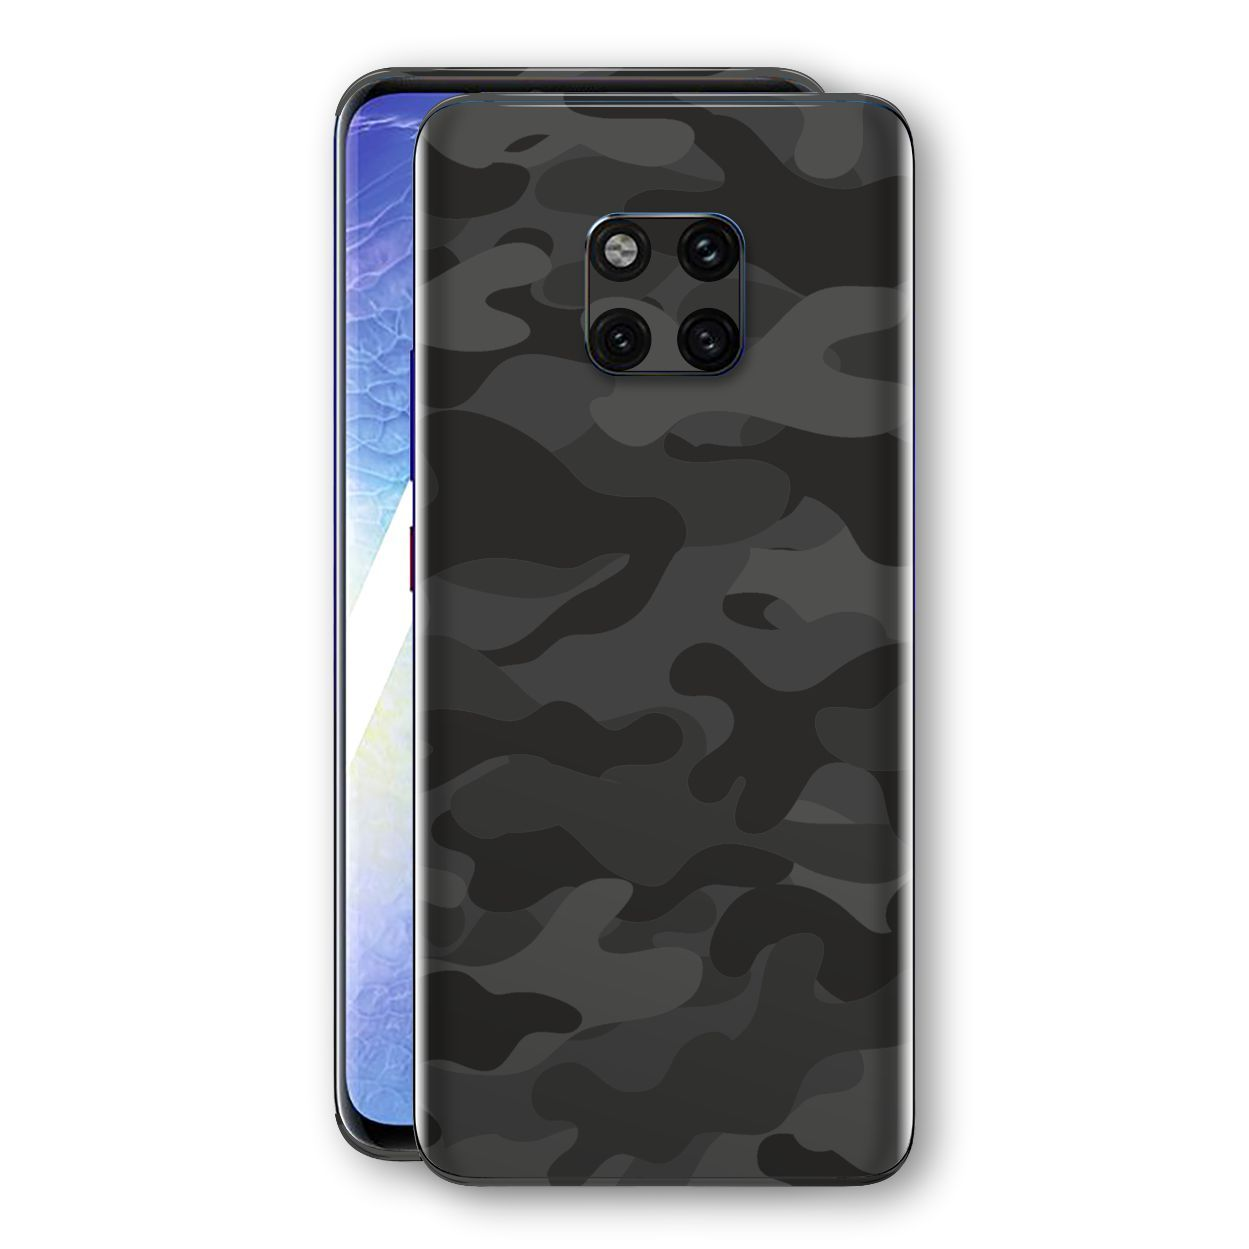 Huawei MATE 20 PRO Signature DARK SLATE CAMO Camouflage Skin Wrap Decal Cover by EasySkinz